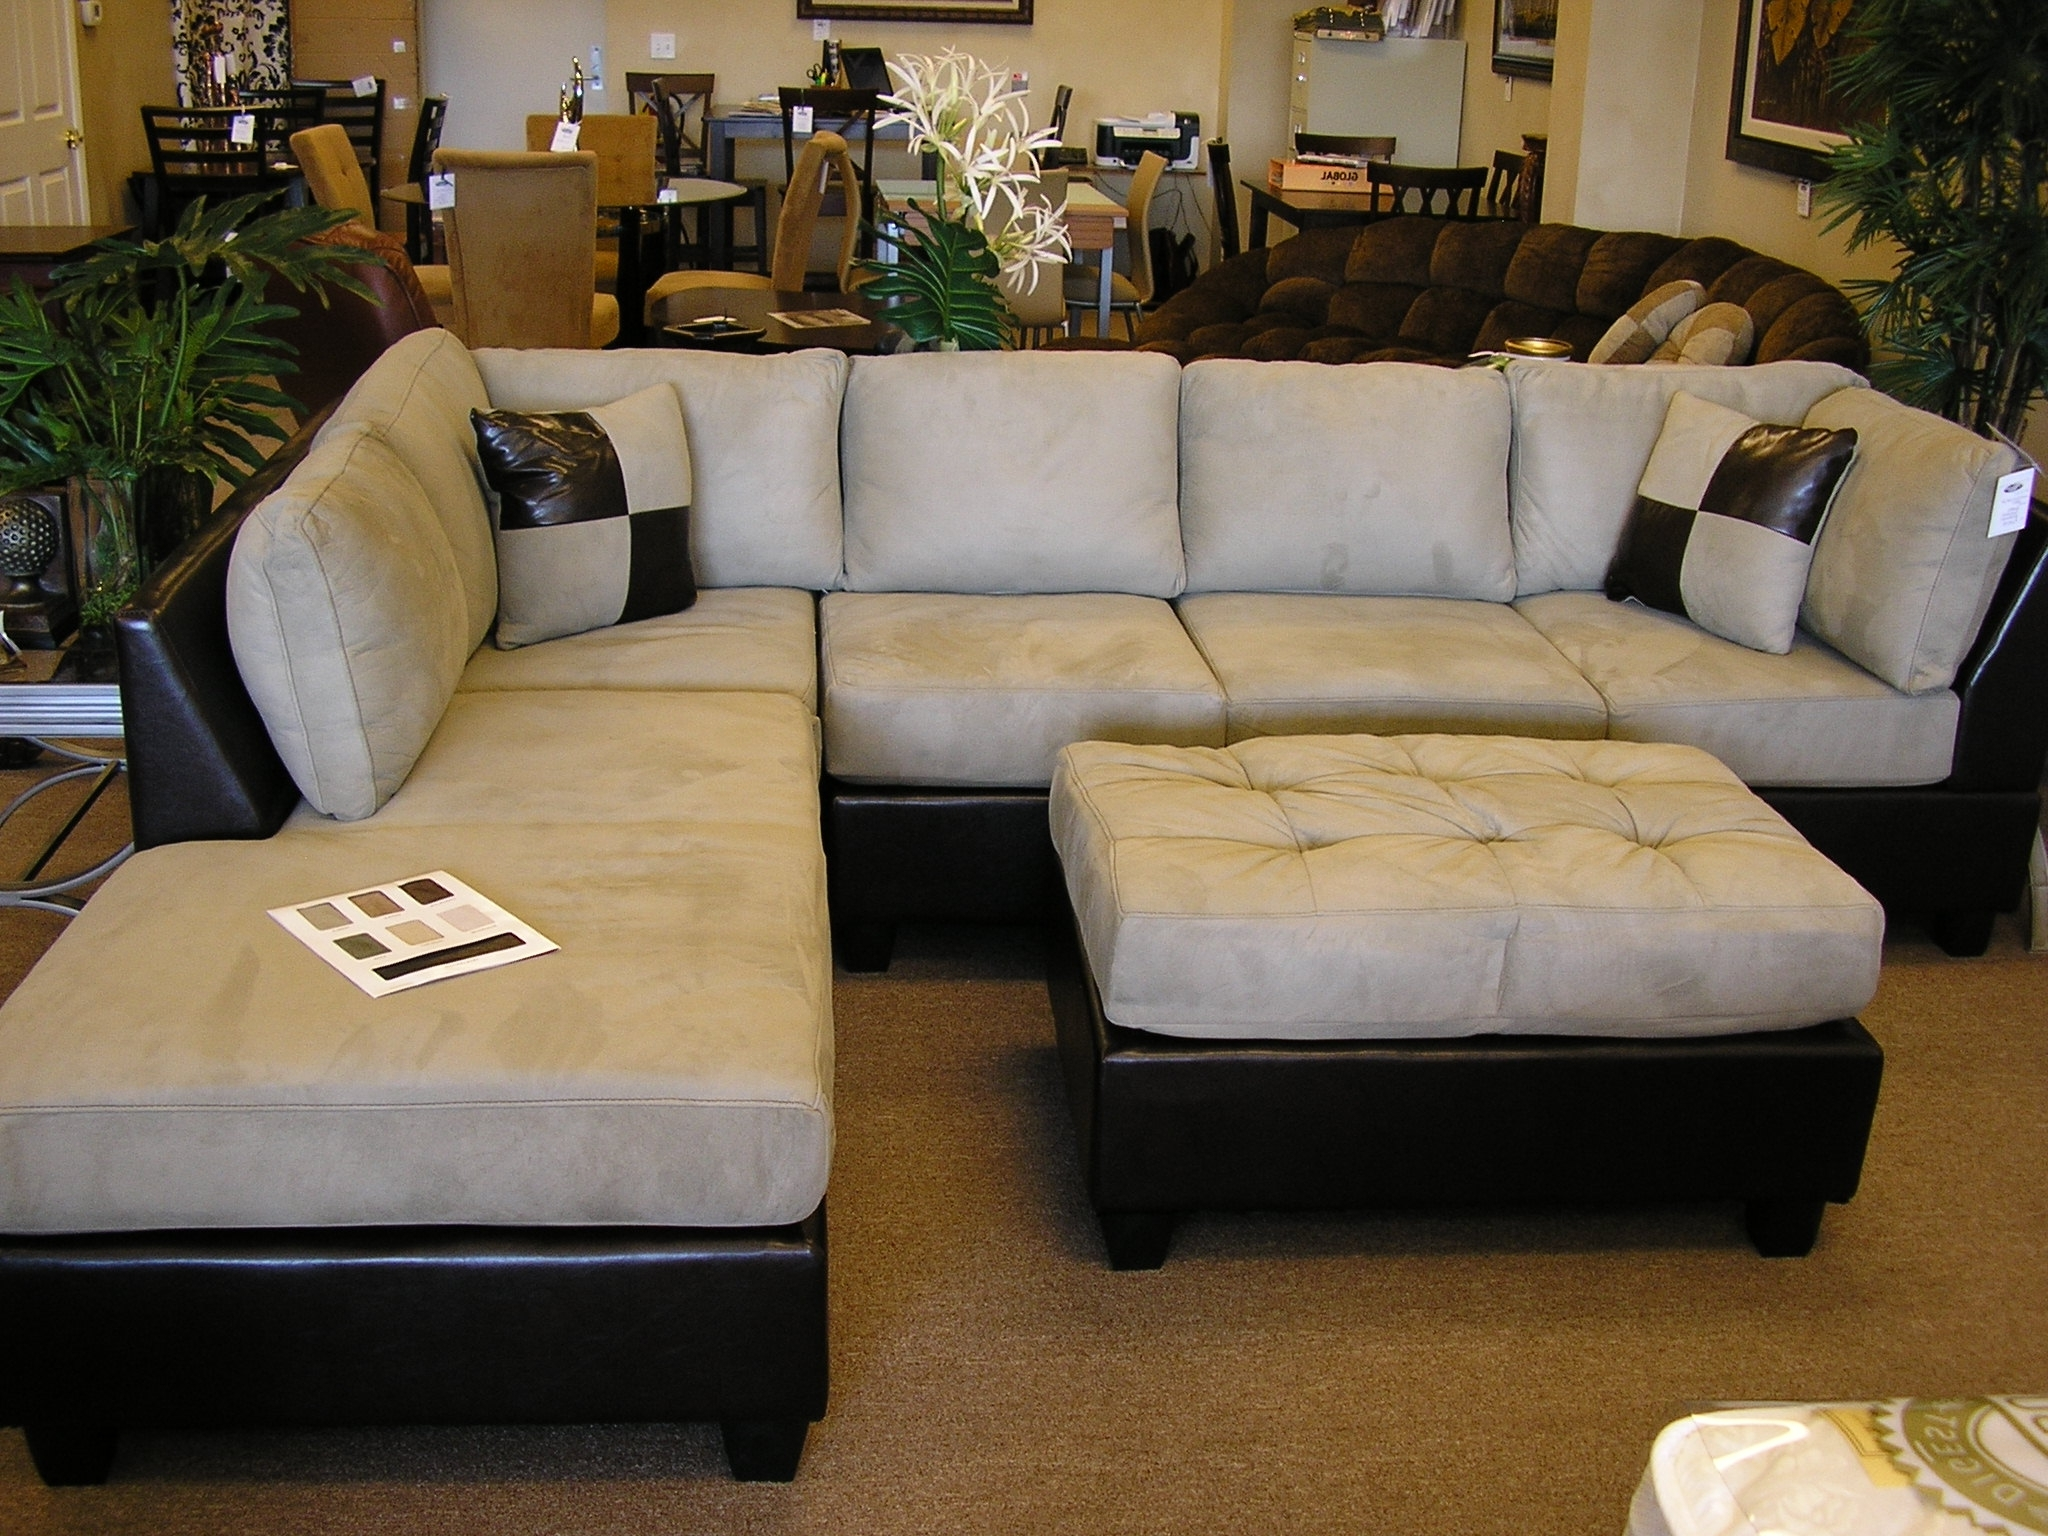 Recent Furniture : Sectional Chaise Lounge Sofa Double Along With Throughout Long Chaise Sofas (View 11 of 15)